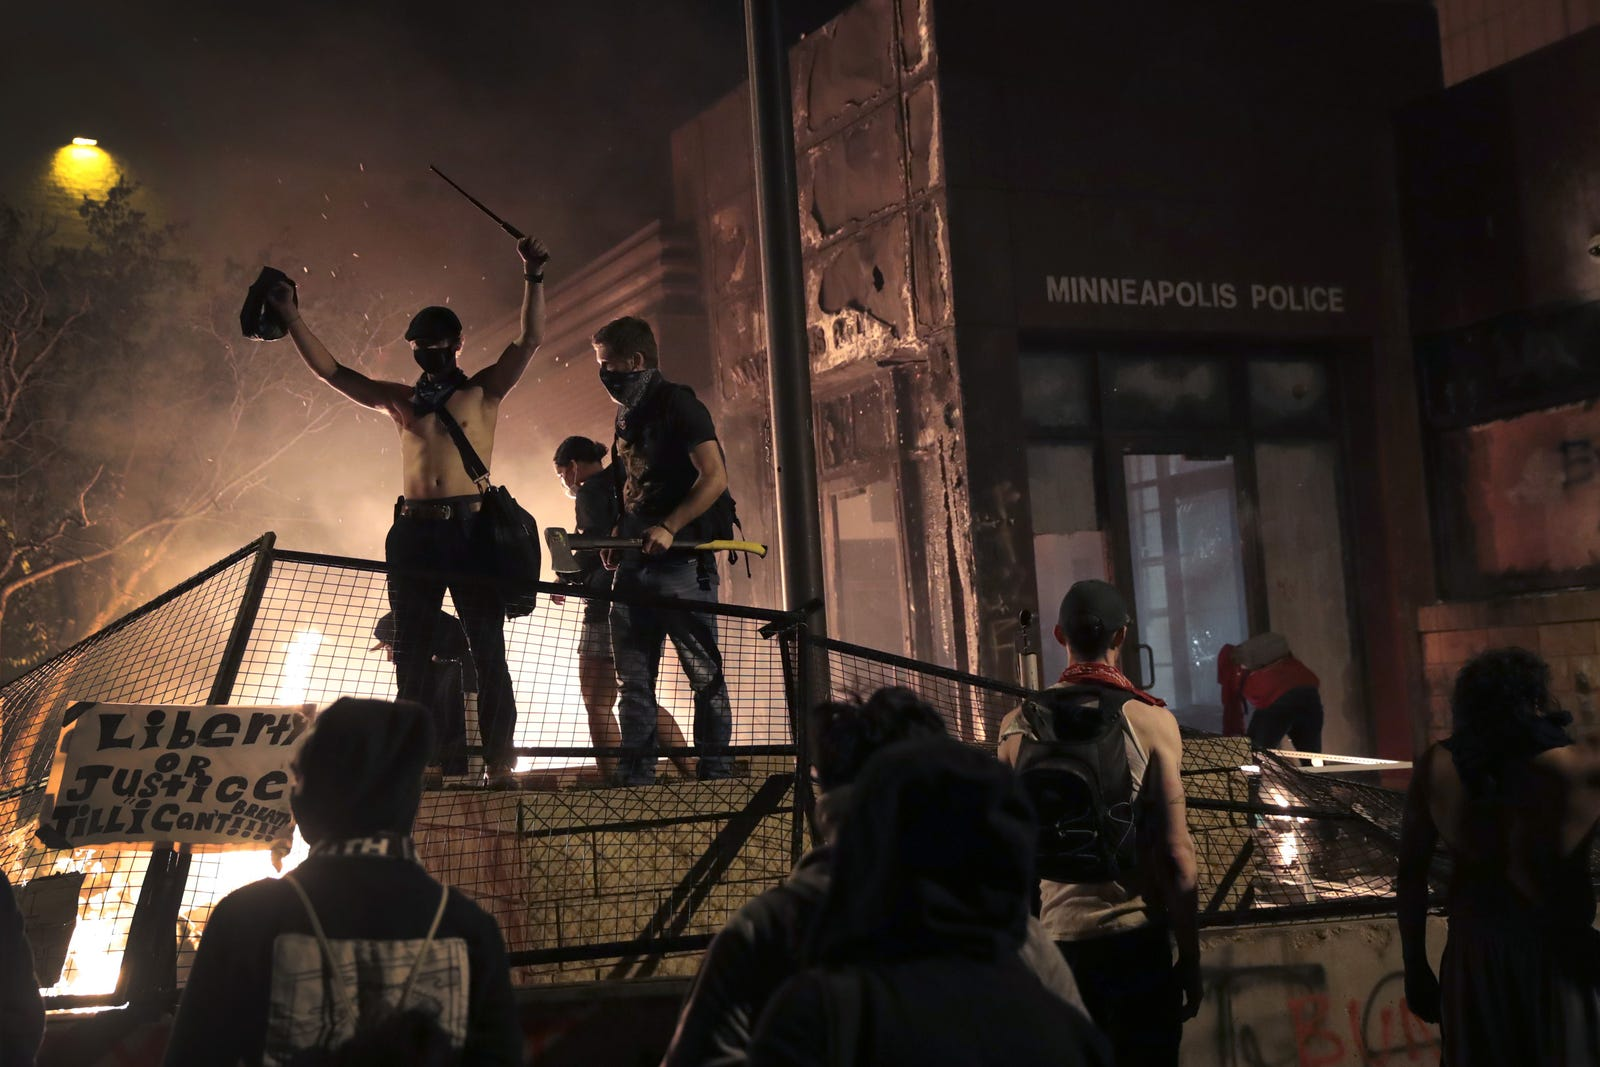 Protesters gather in front of the 3rd precinct police building while it burns on May 28, 2020 in Minneapolis, Minnesota.